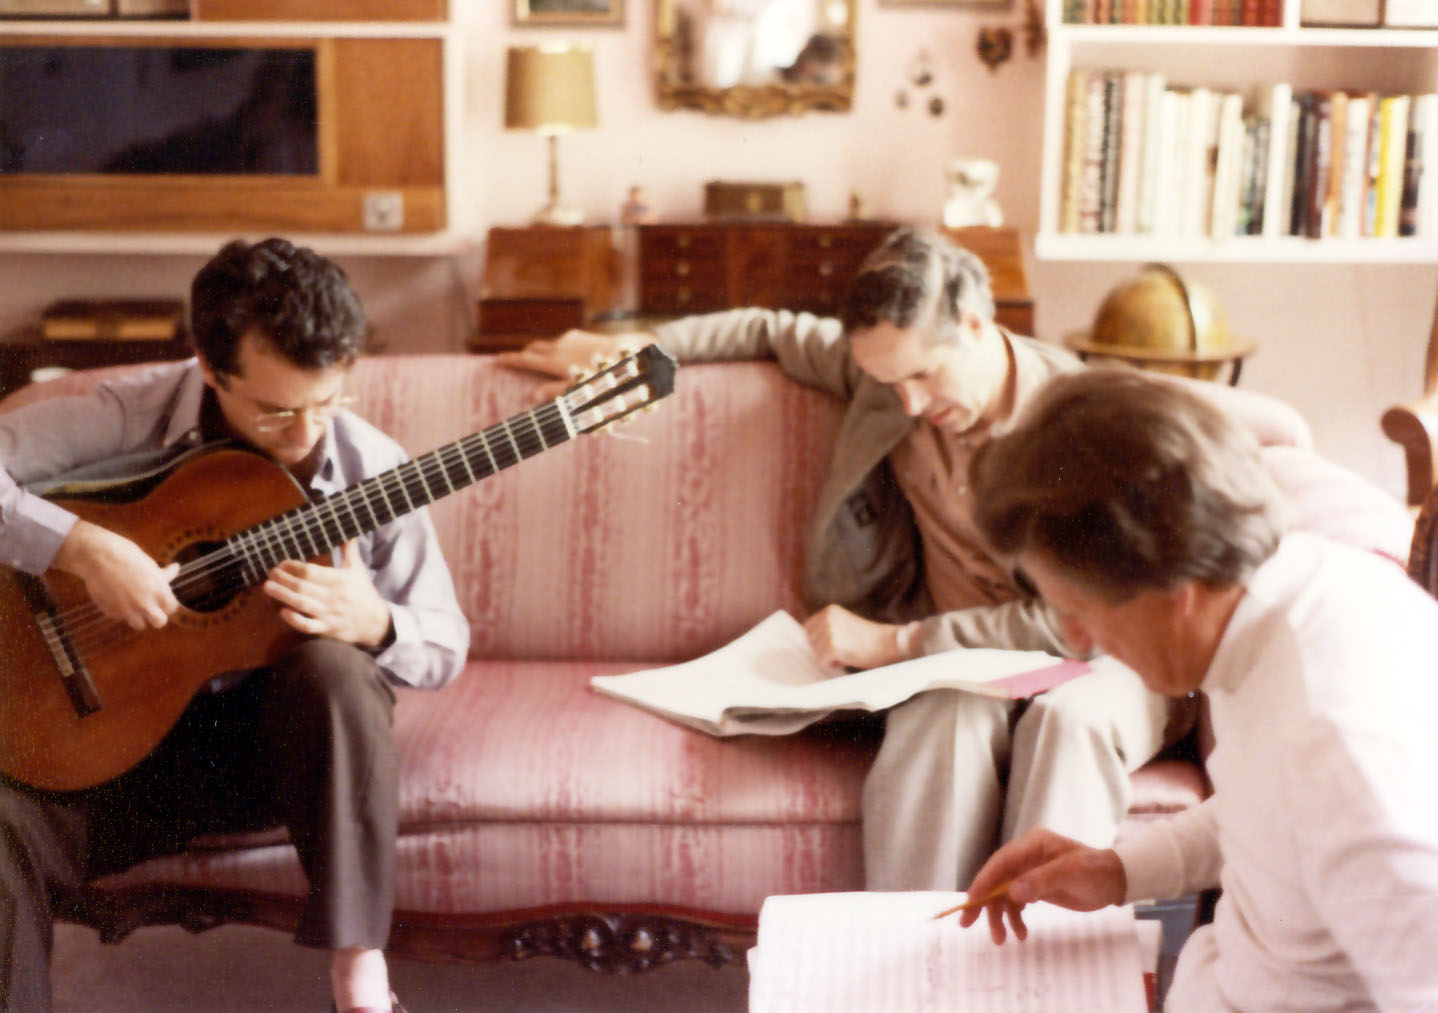 Rehearsing with Neville Marriner the ¨Concierto para una fiesta¨  (with producer Wilhelm Hellweg)